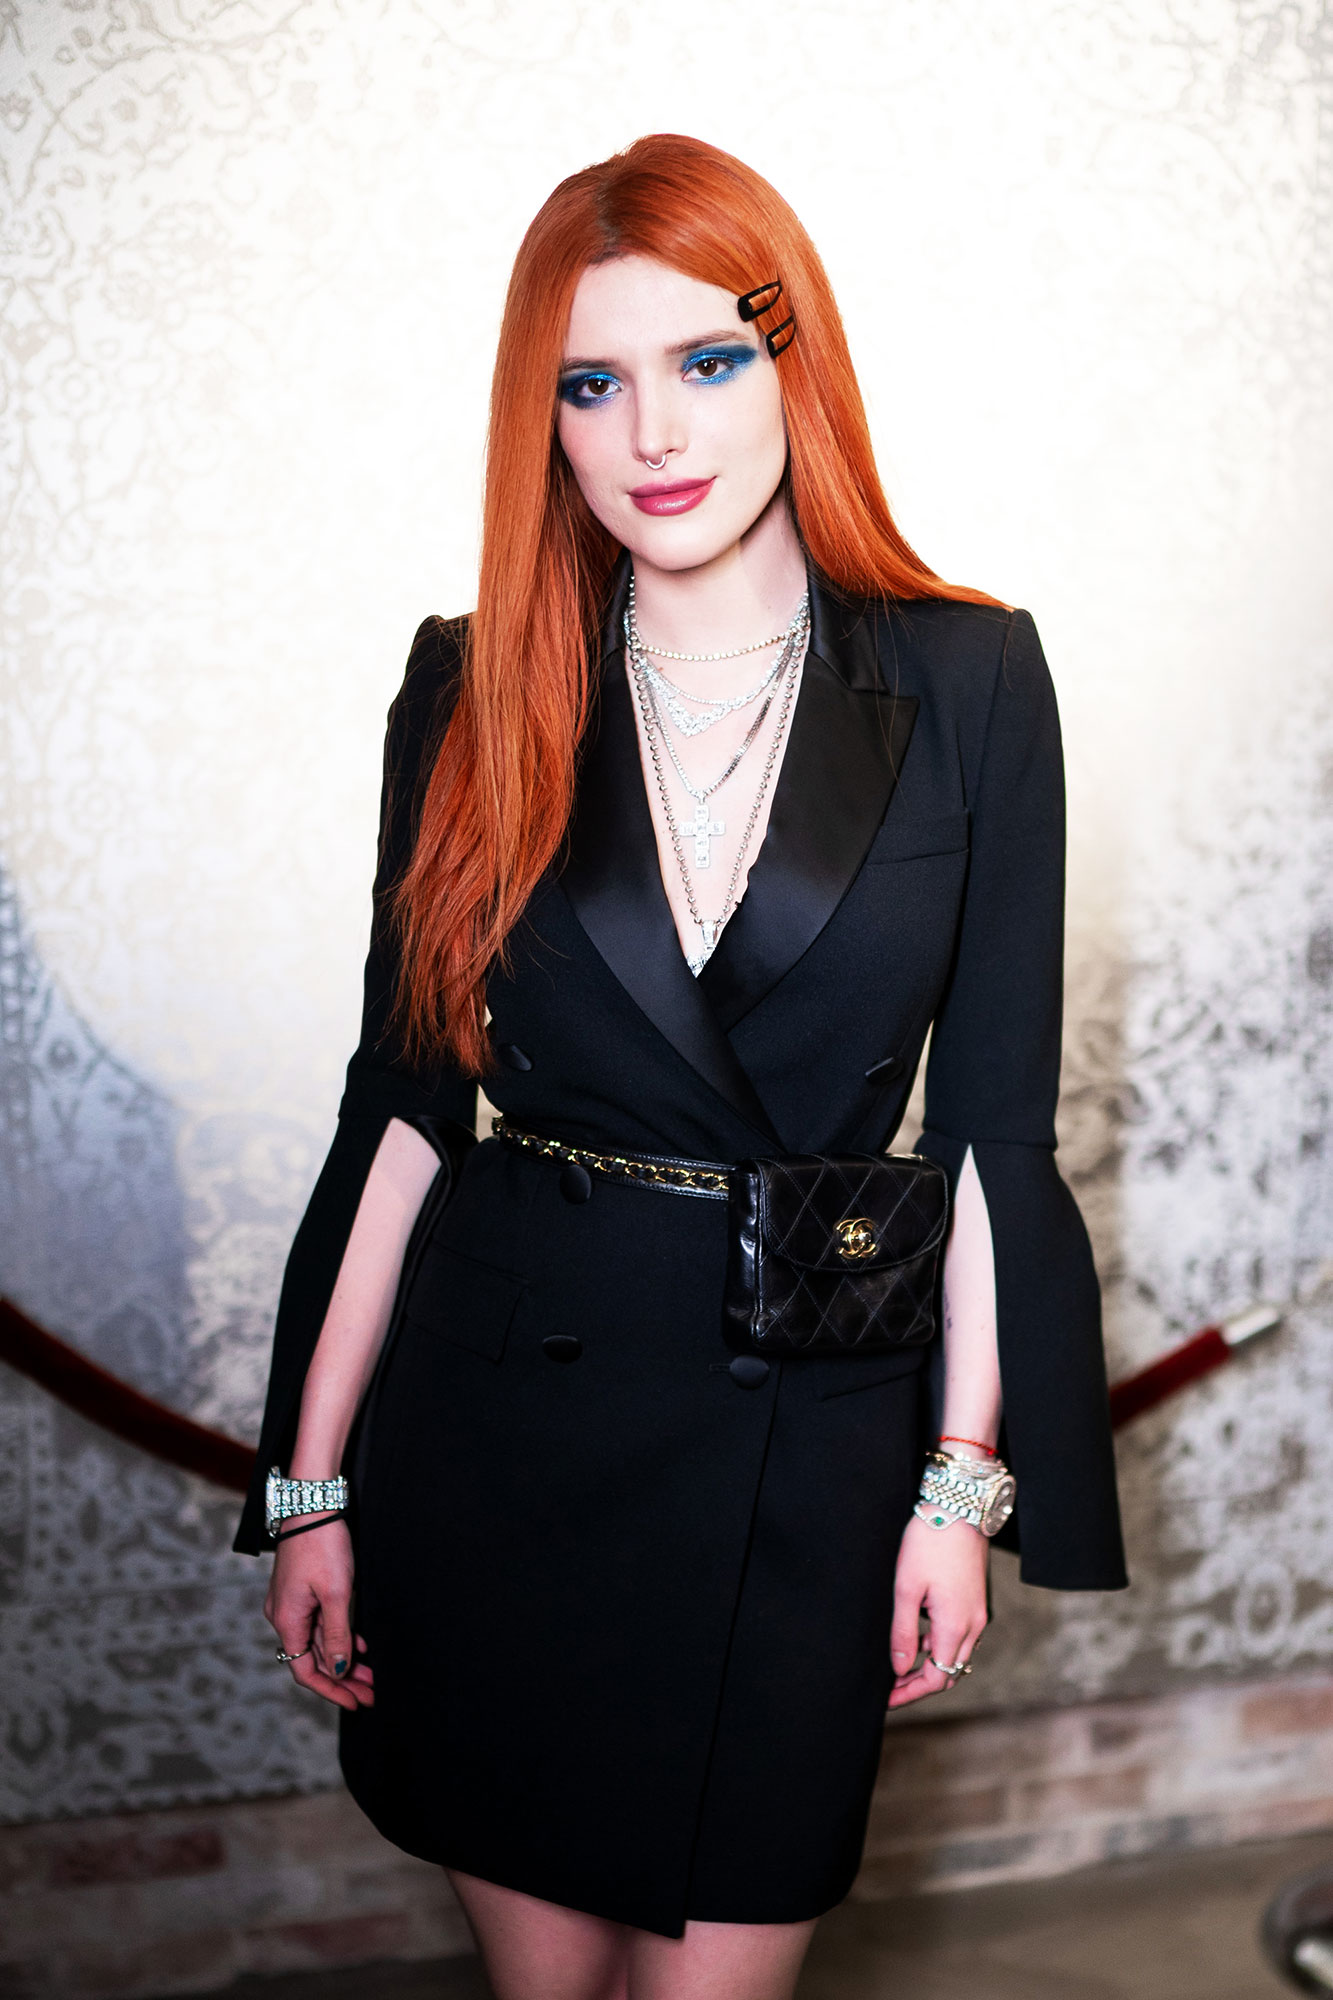 Bella Thorne - When attending the Daily Front Row Kick Off Party on February 7, the actress wore a super sexy tuxedo jacket dress with slits up the long sleeves and a chain belt.